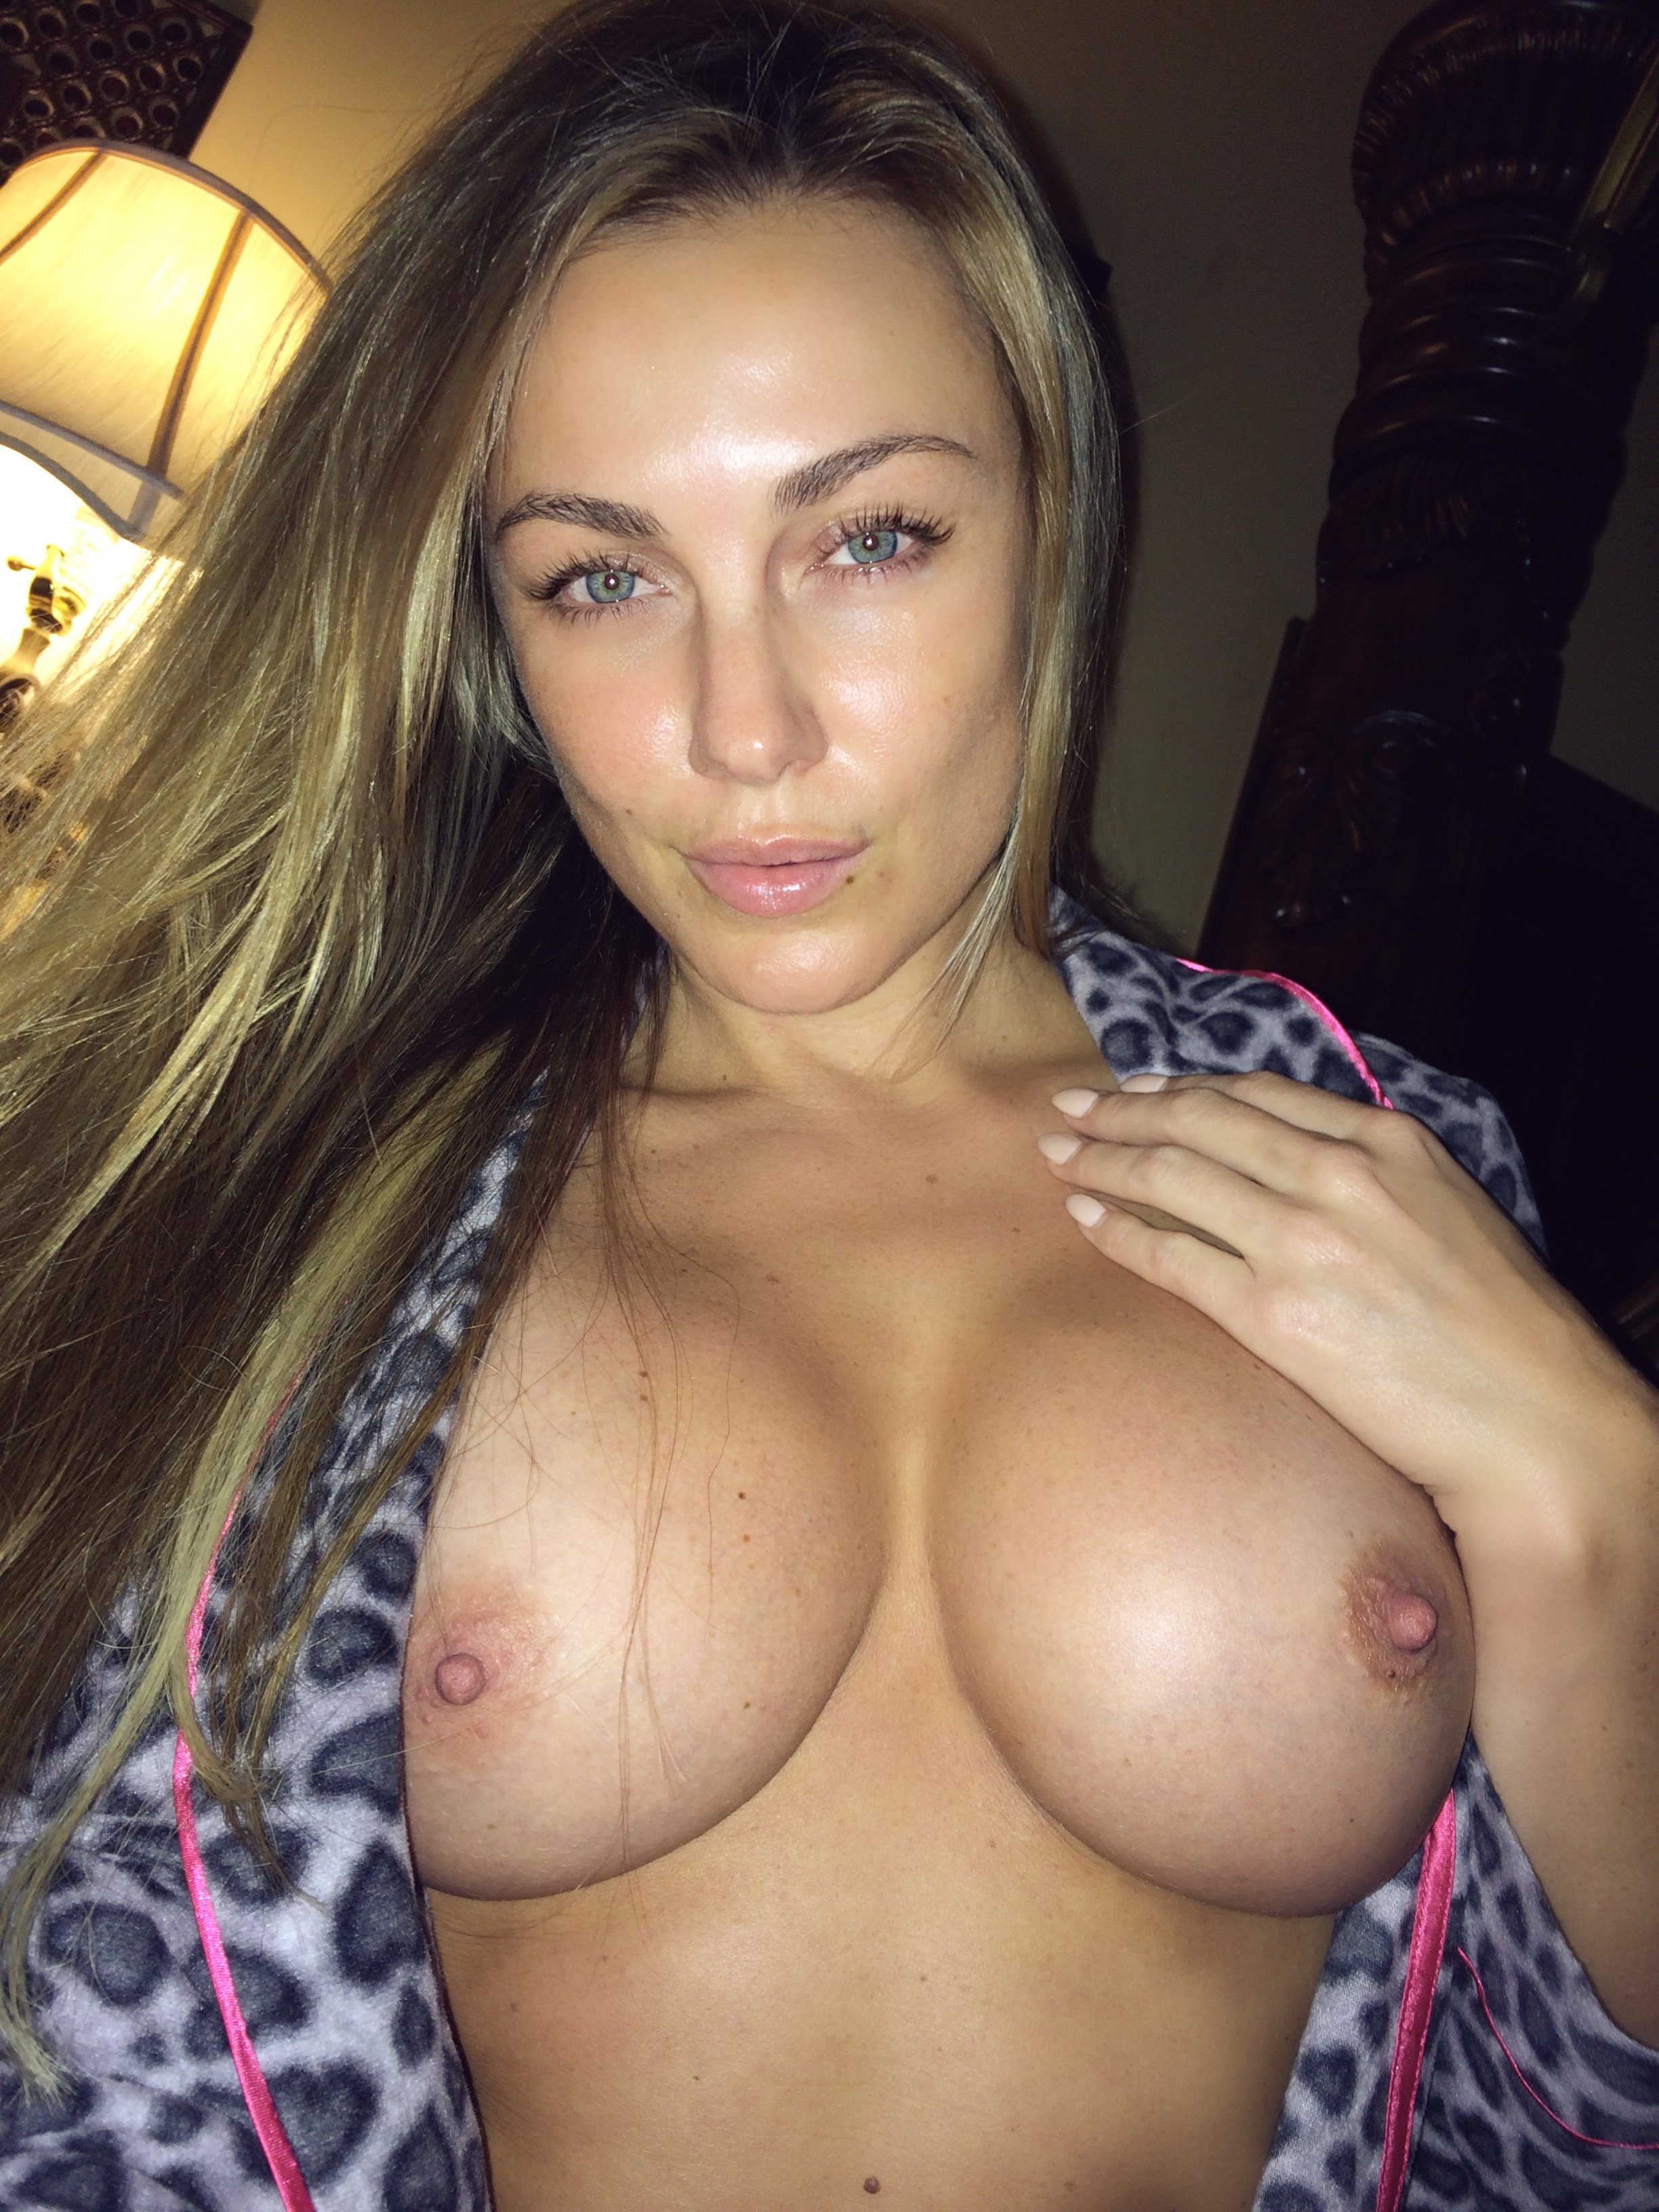 Amber Nichole topless pic